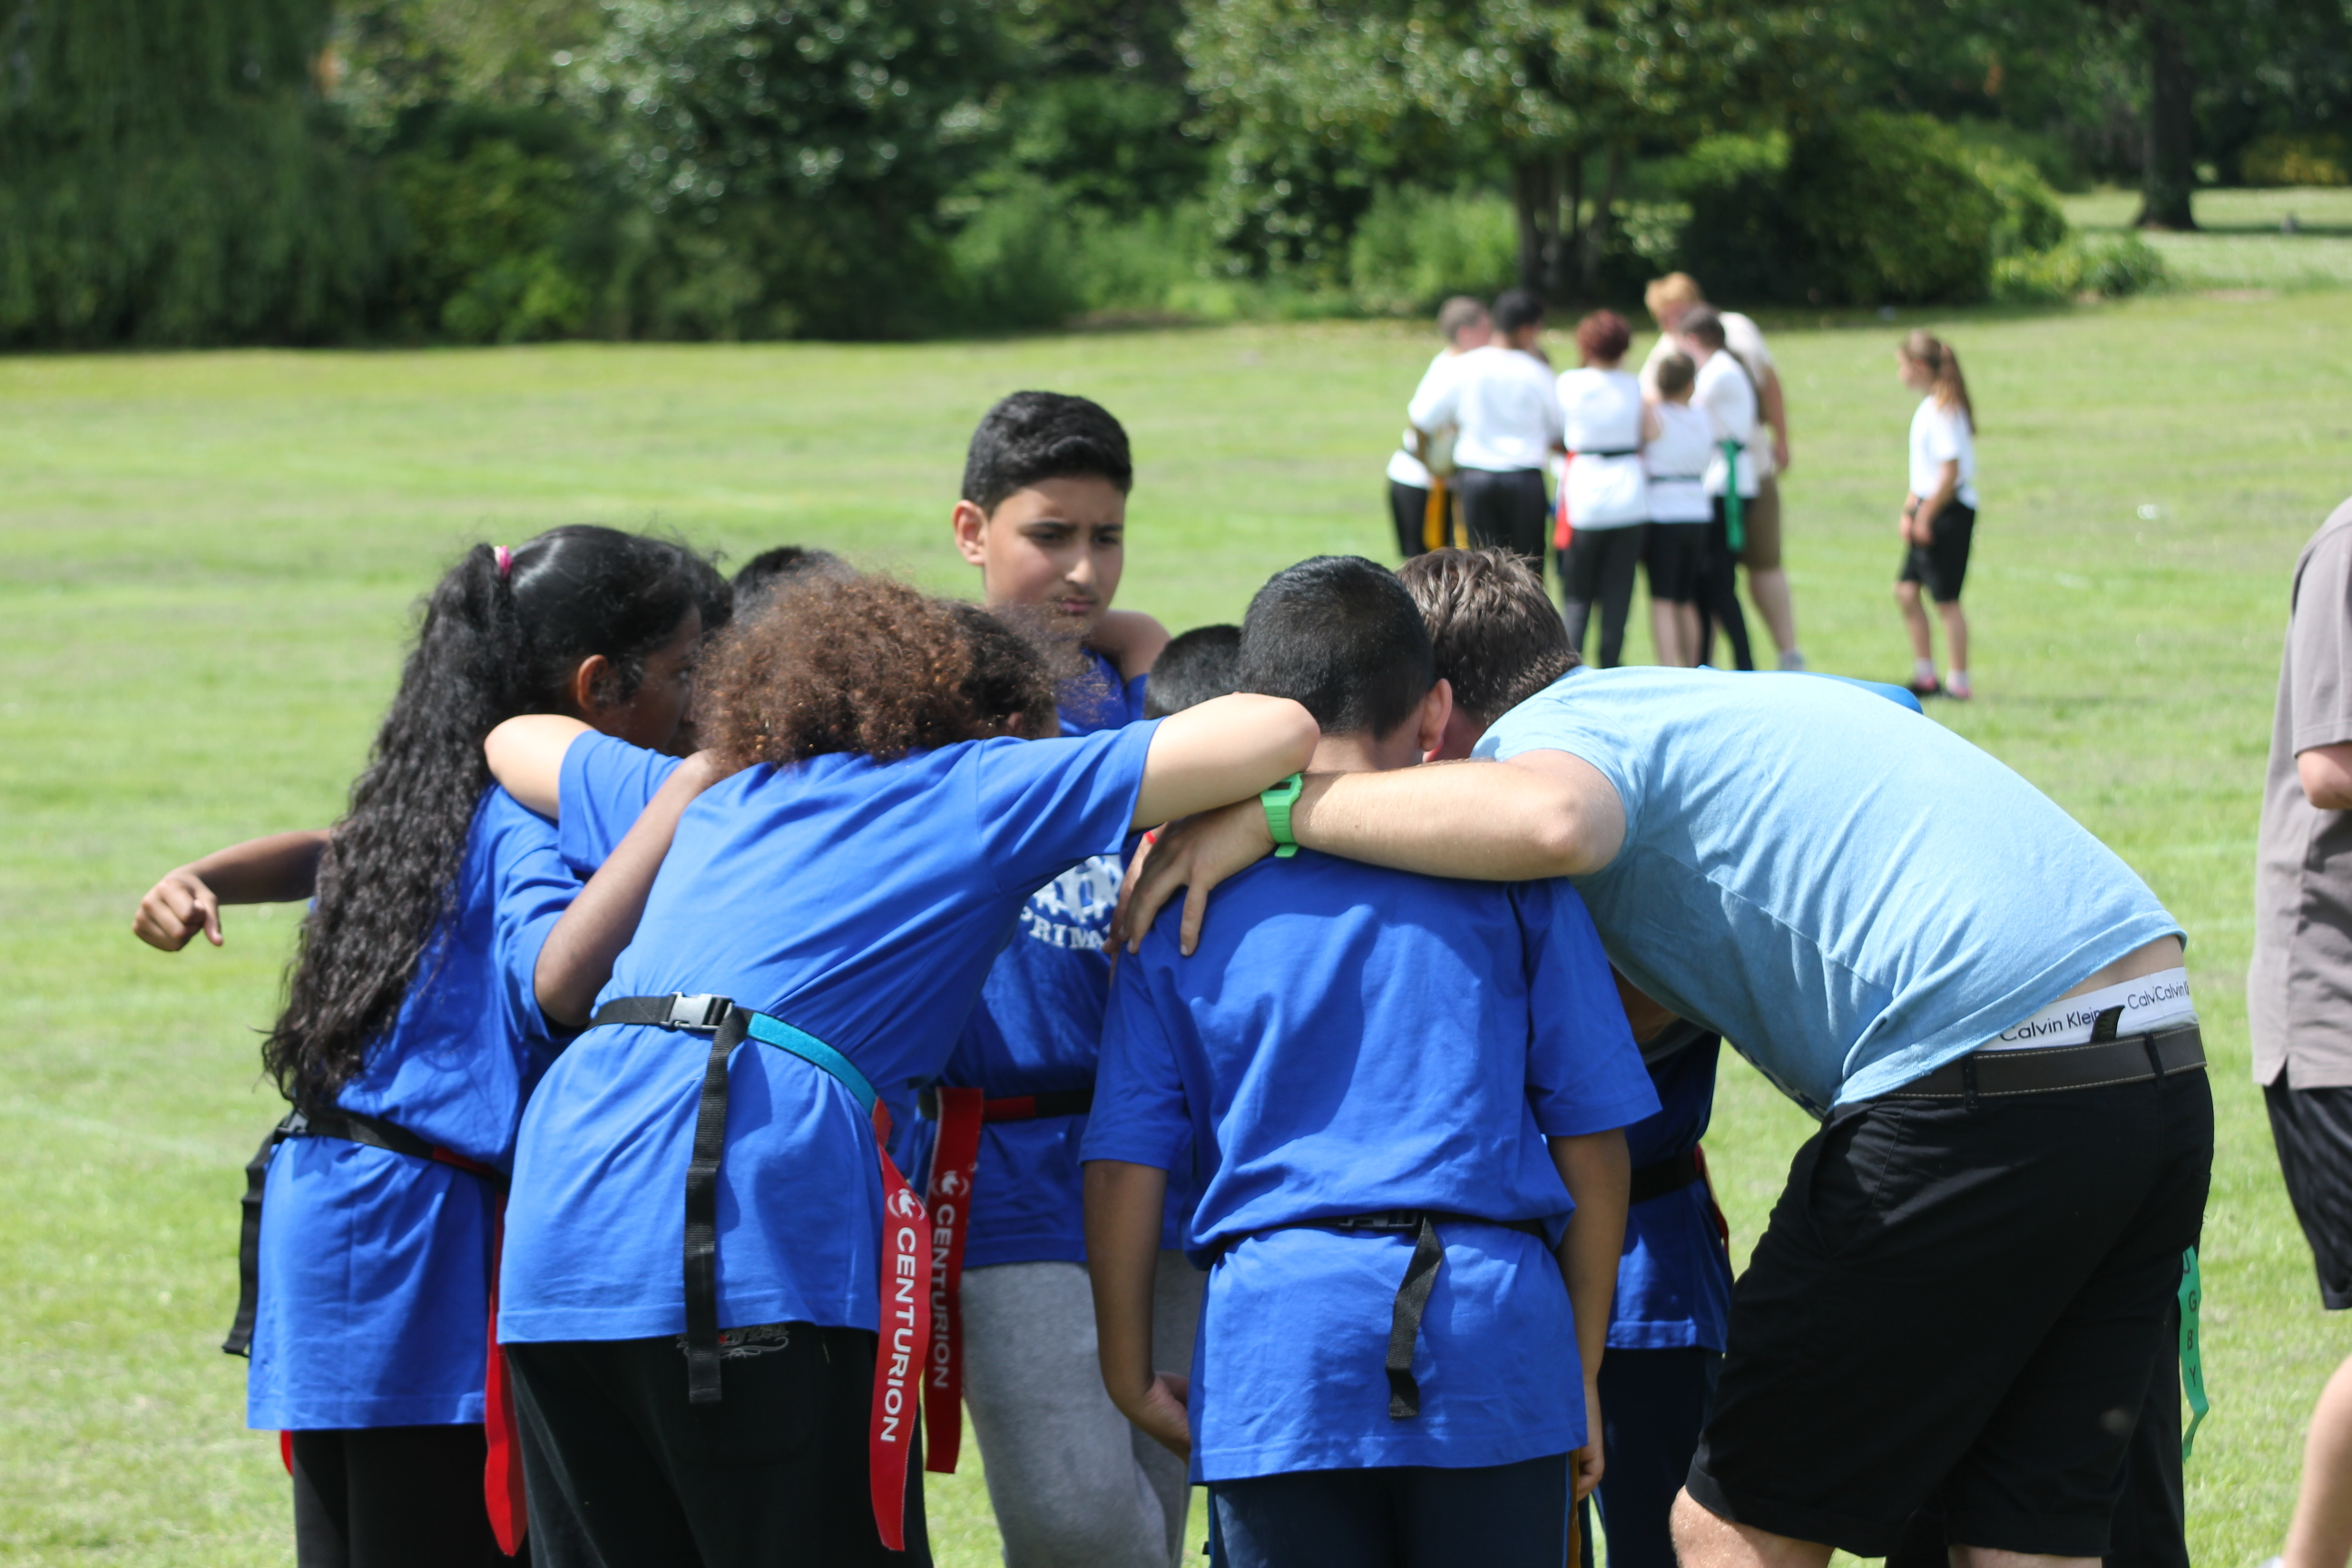 Arches Partnership Games rounds off National School Sport Week